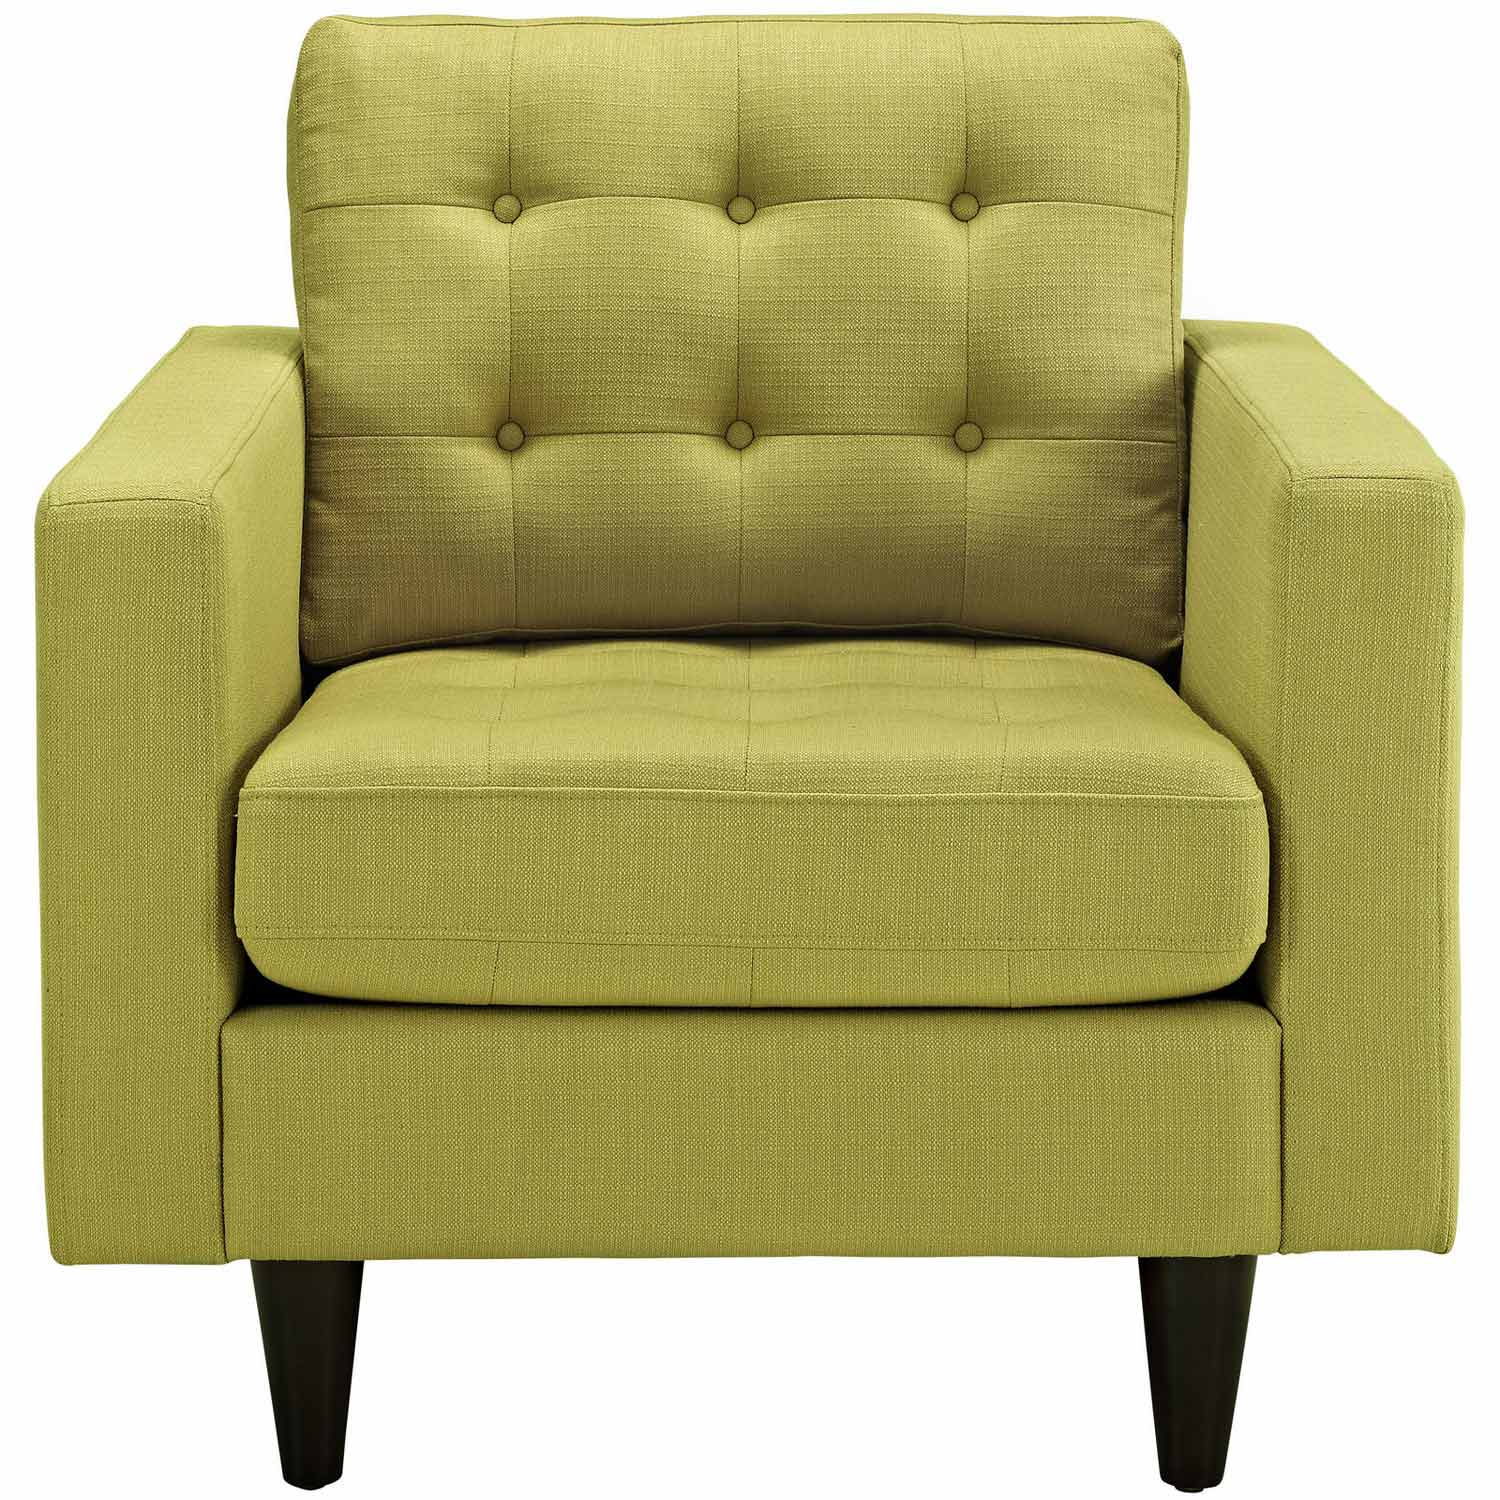 Modway Empress Upholstered Armchair - Wheatgrass